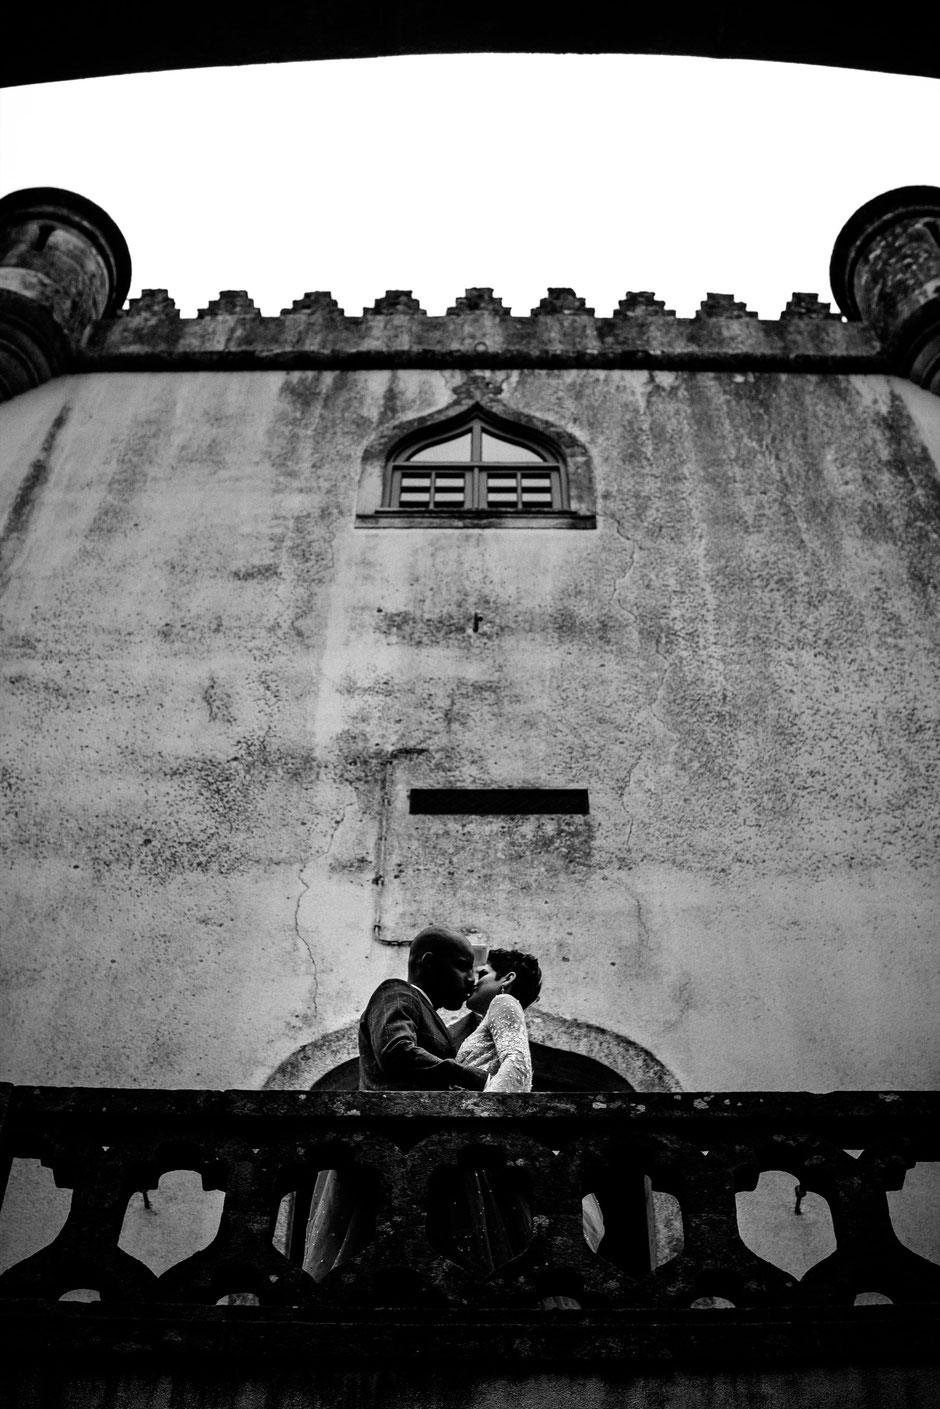 ROVA Fineart wedding photography - portugal castle fairy tale - Hochzeitsfotograf Schloss Burg - Elopement - destination wedding -castelo de portulezo